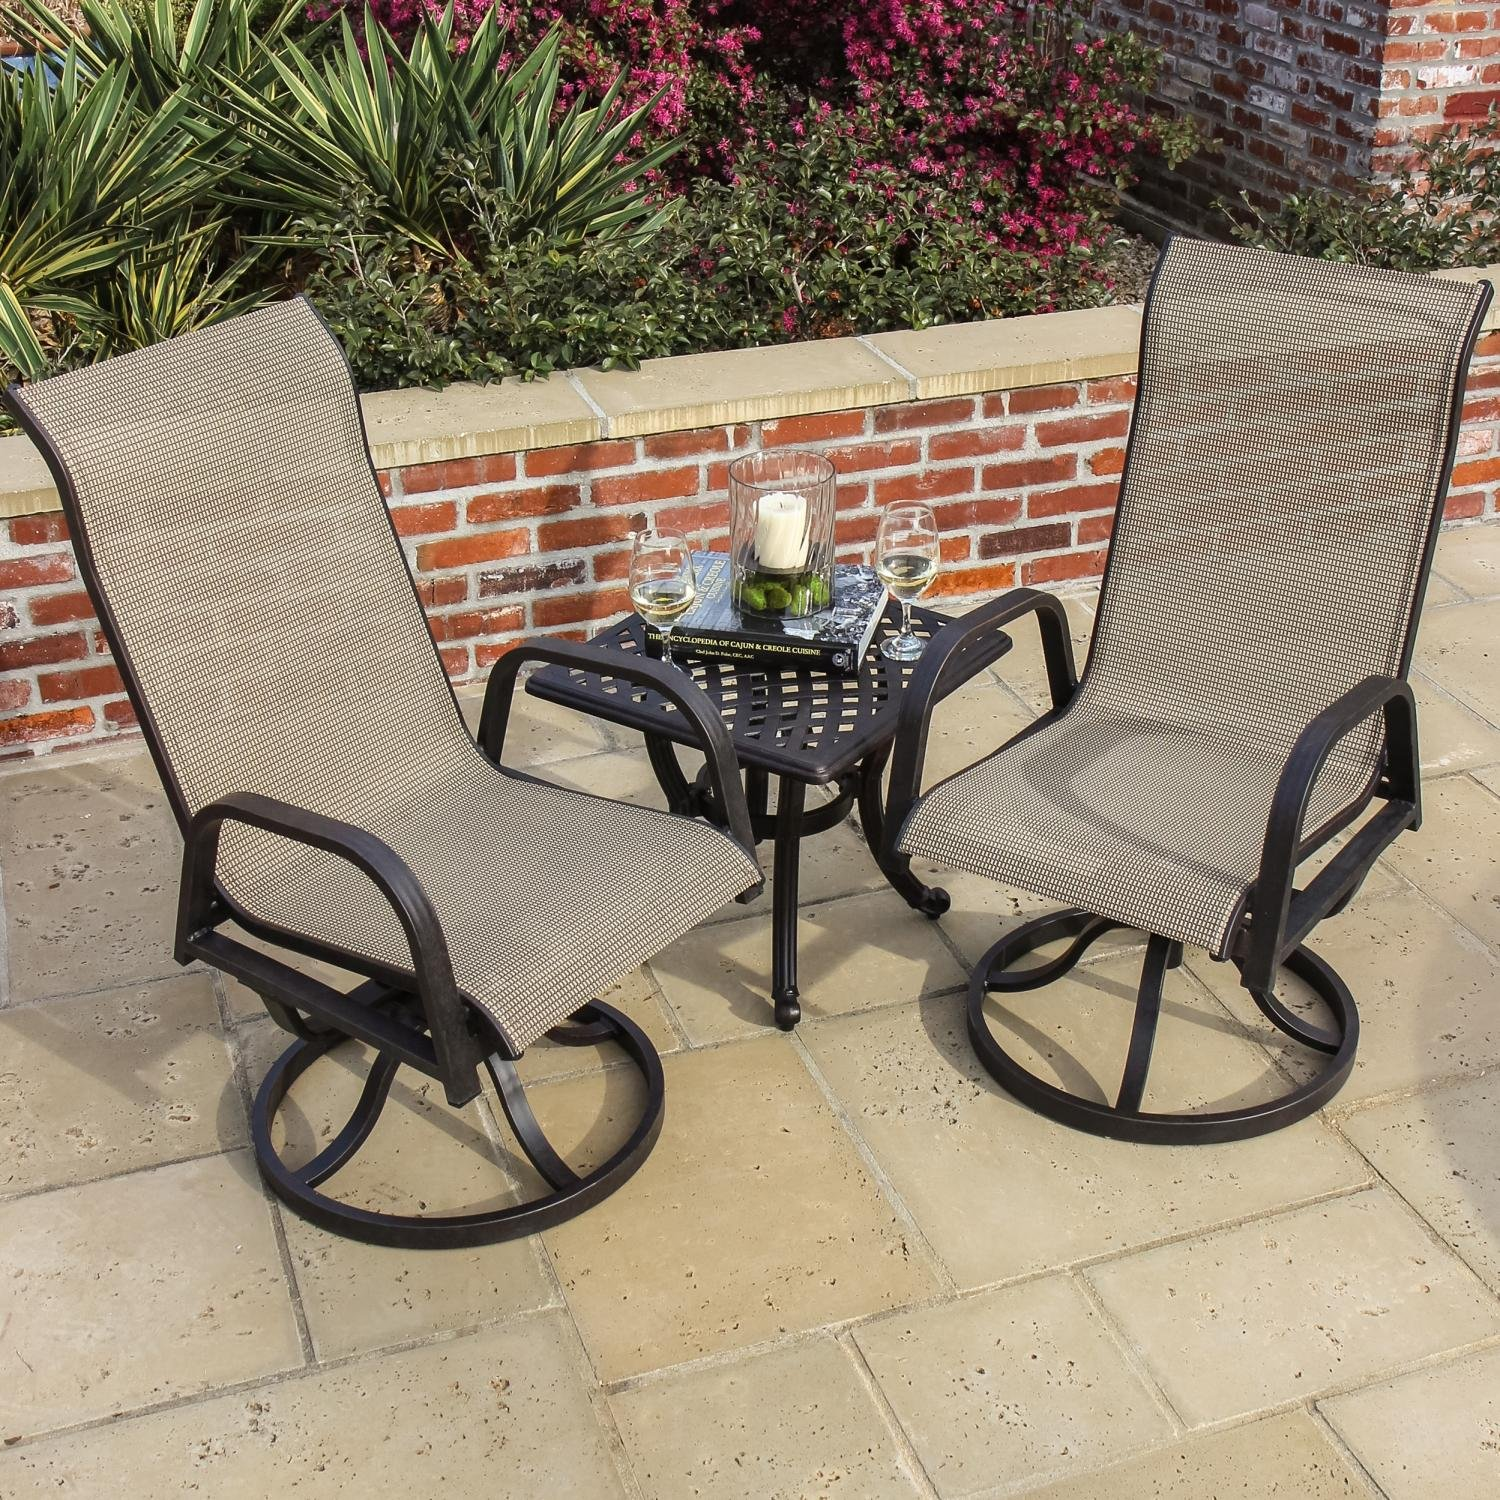 Magnificent Madison Bay 2 Person Sling Patio Bistro Set With Cast Unemploymentrelief Wooden Chair Designs For Living Room Unemploymentrelieforg